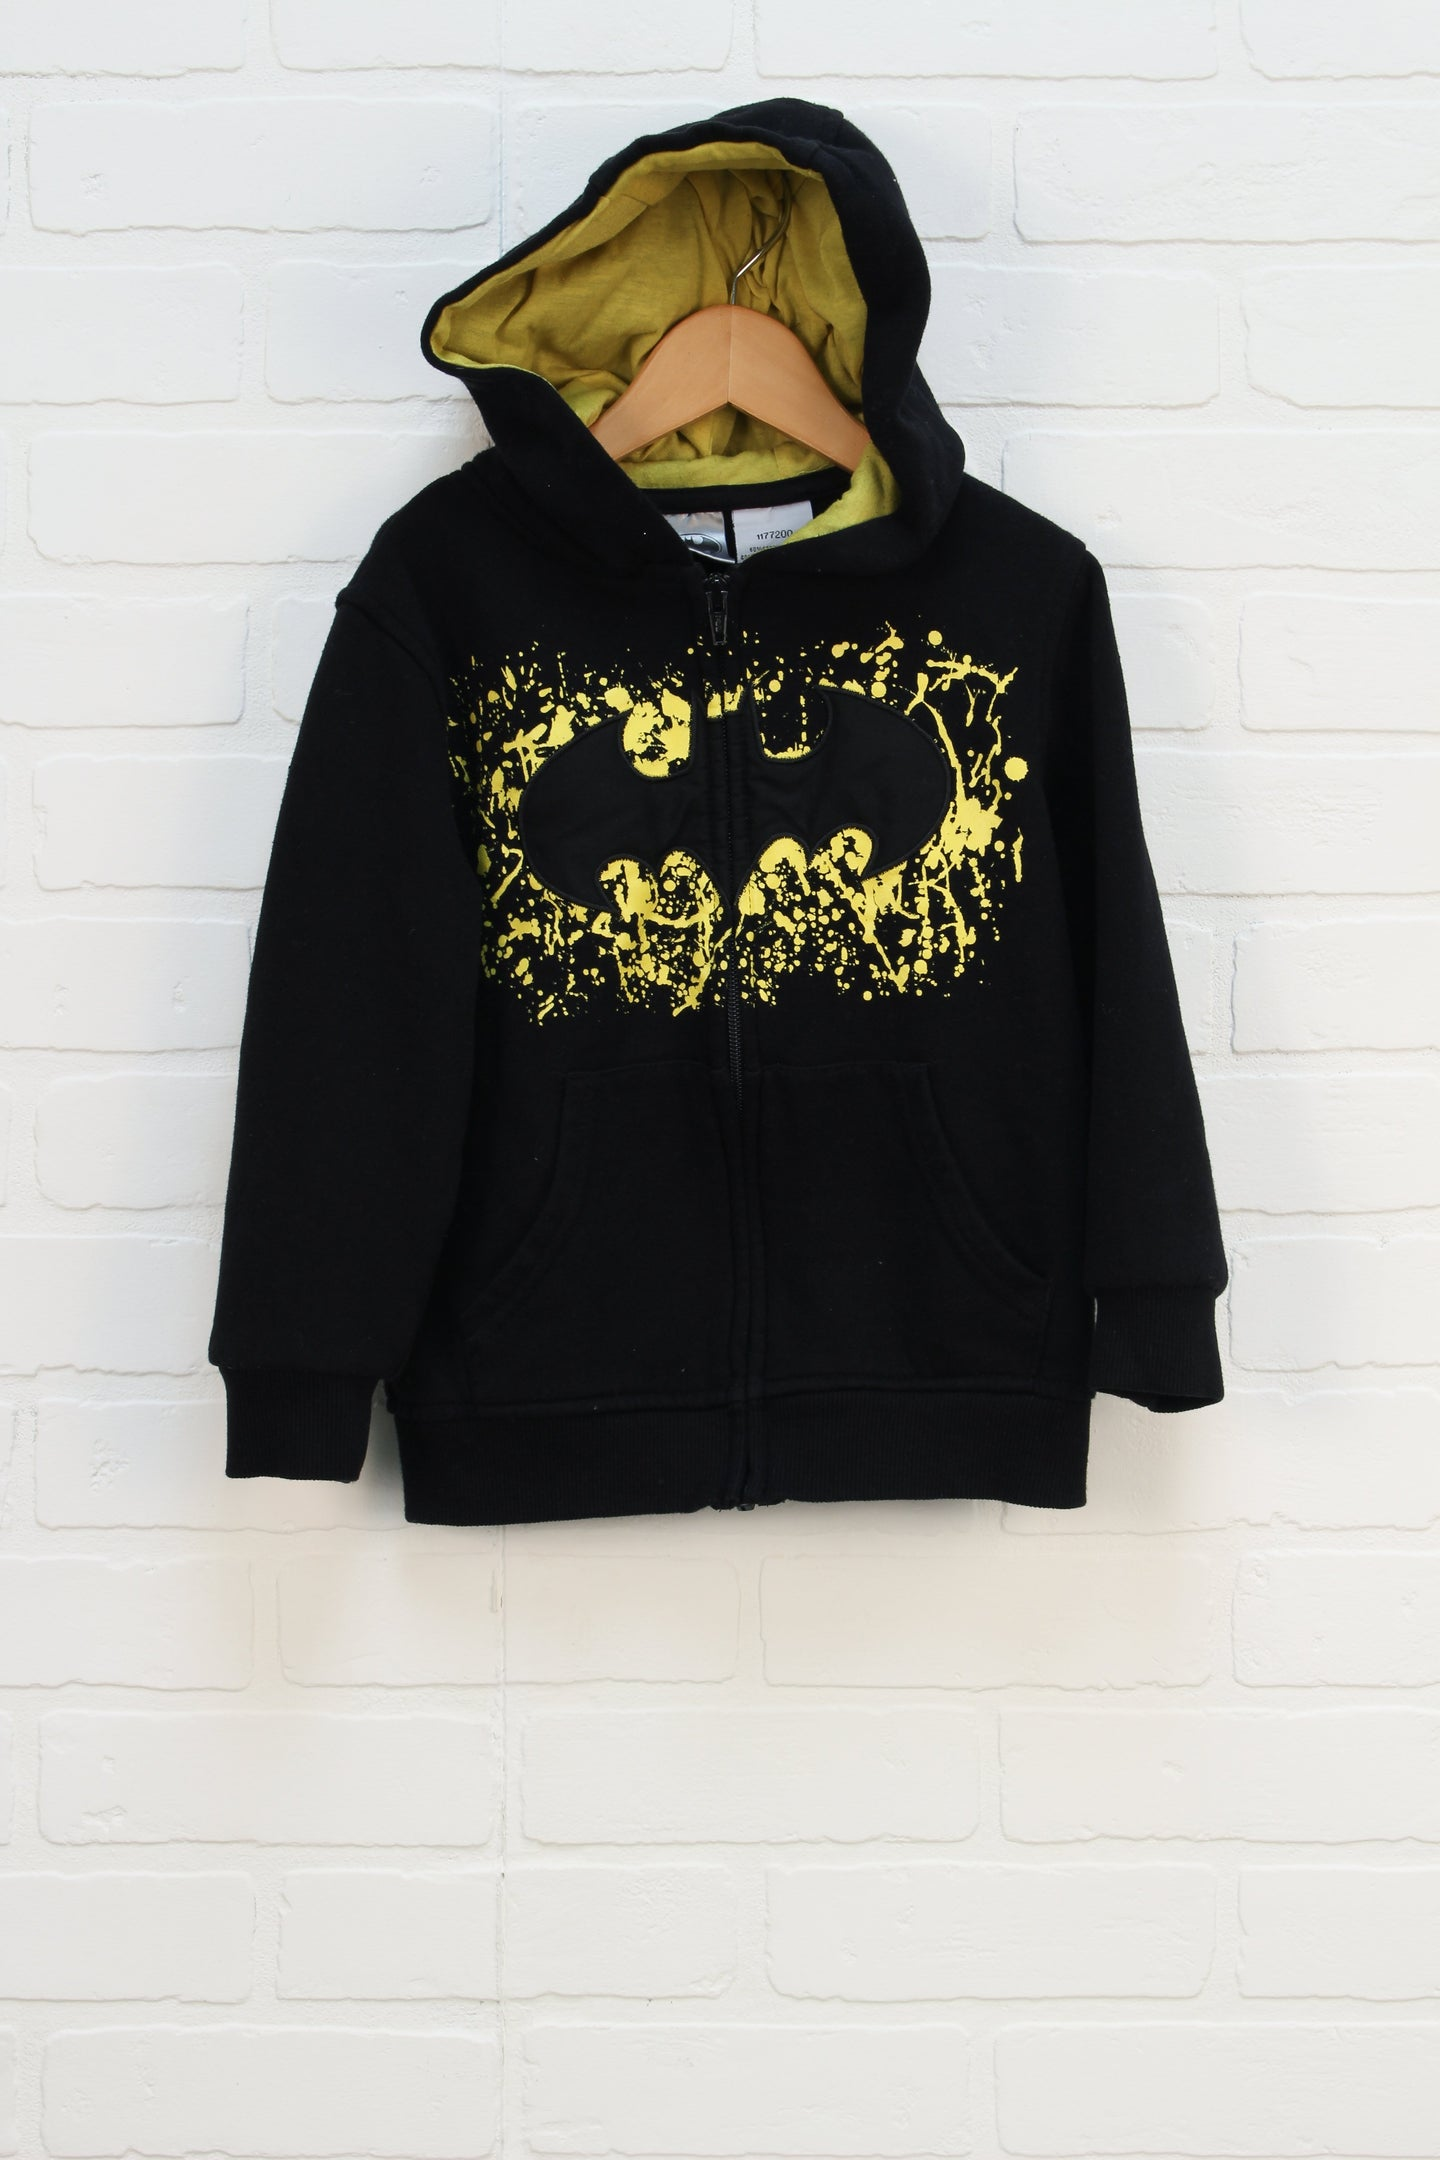 Black Graphic Hoodie: Batman (Size 5)